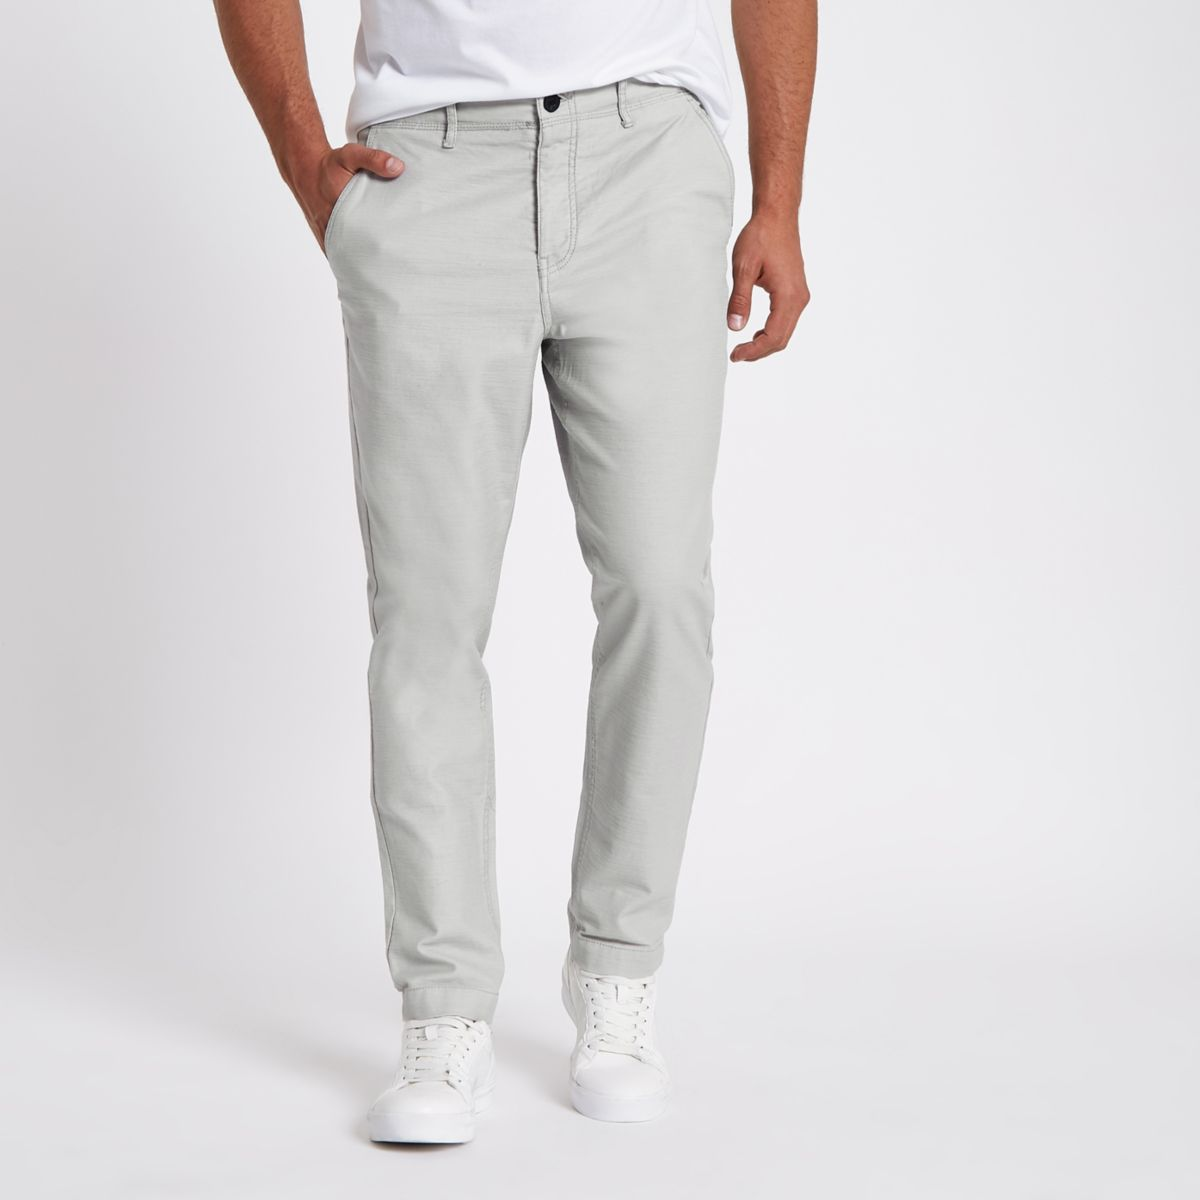 Grey slim fit tapered chino pants